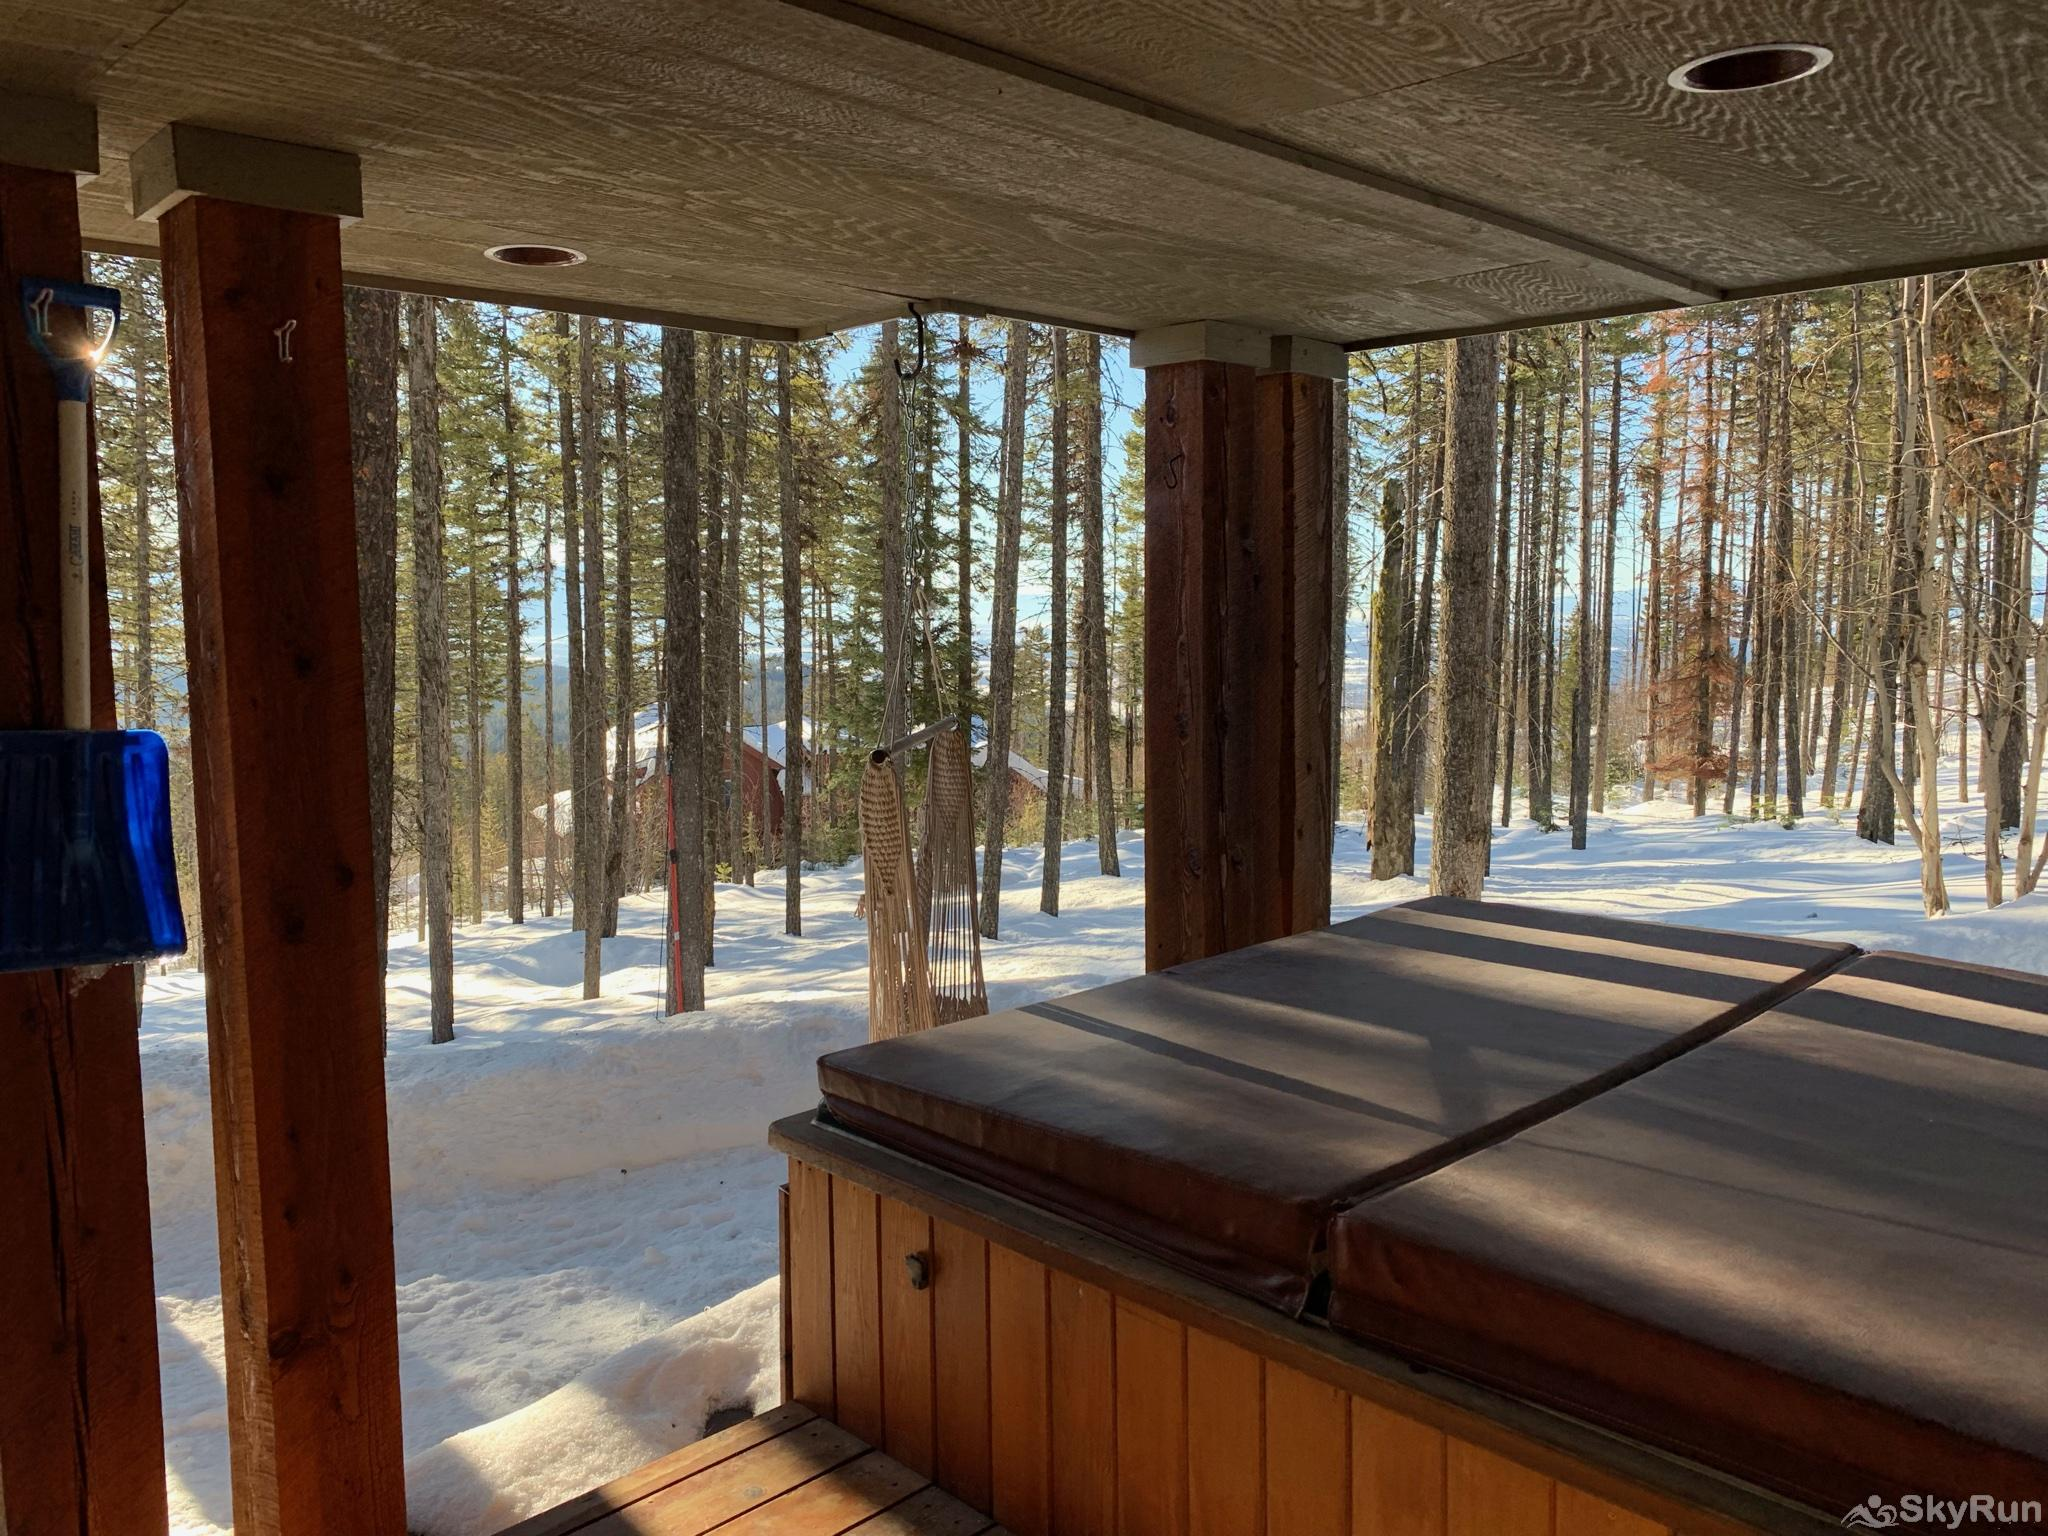 Whispering Pines Chalet The hot tub is protected from the snow but has great views of the surrounding trees.